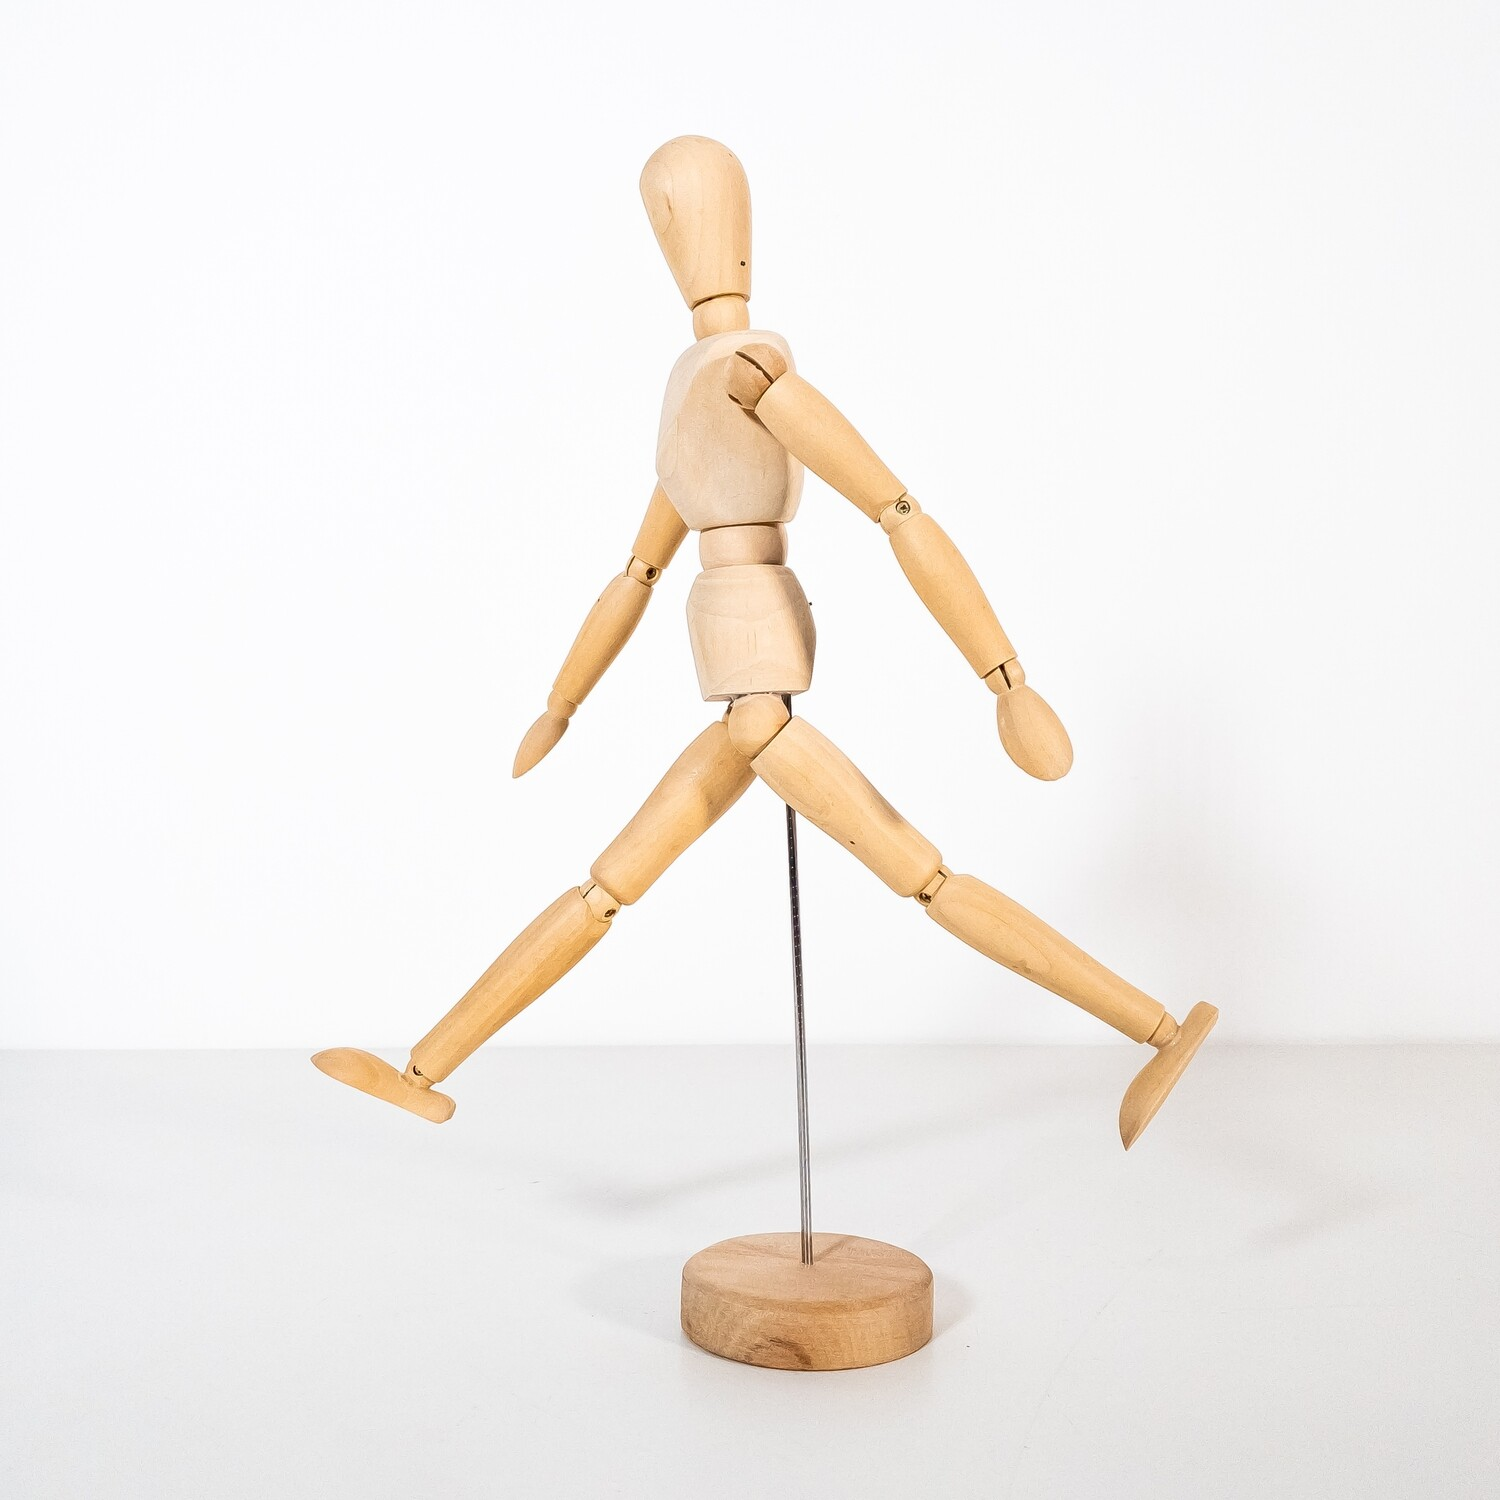 Articulated wooden drawing mannequin